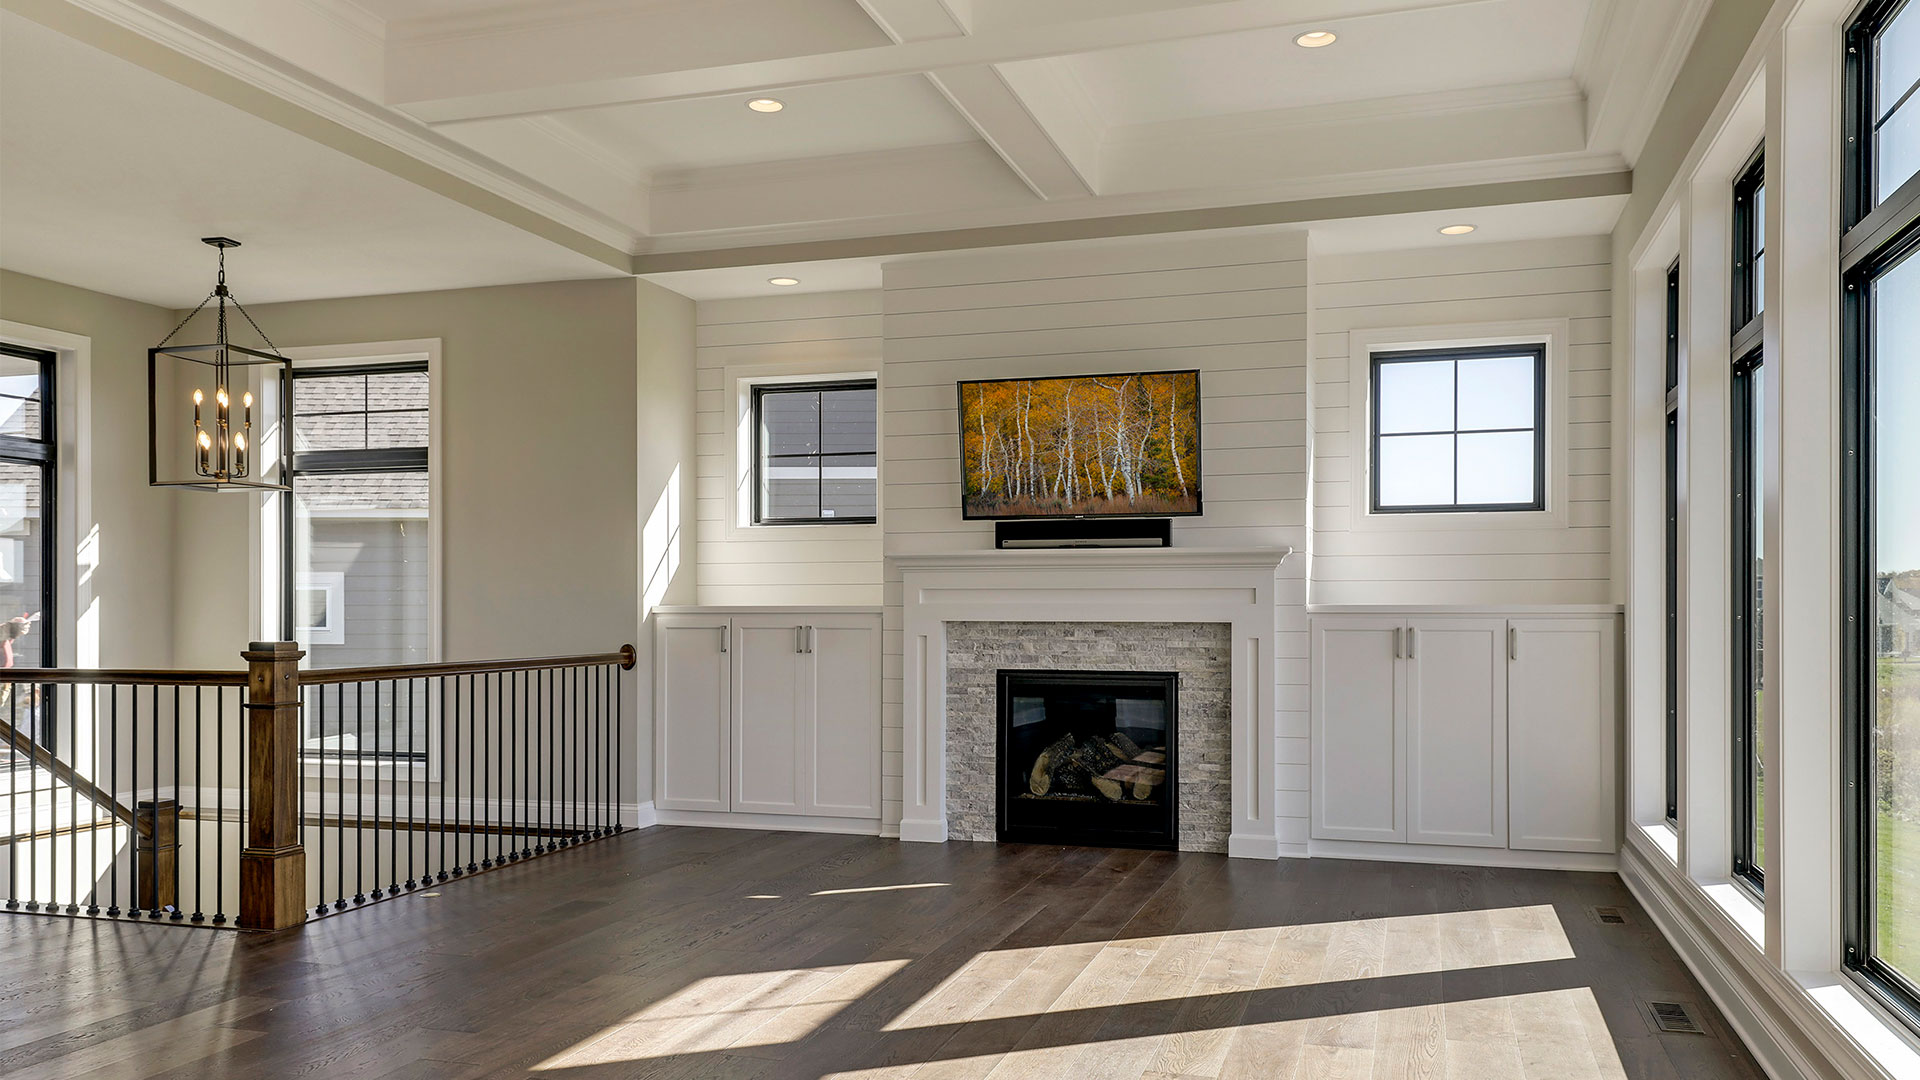 Rapp FarmSaddle Club Parade of Homes Trends